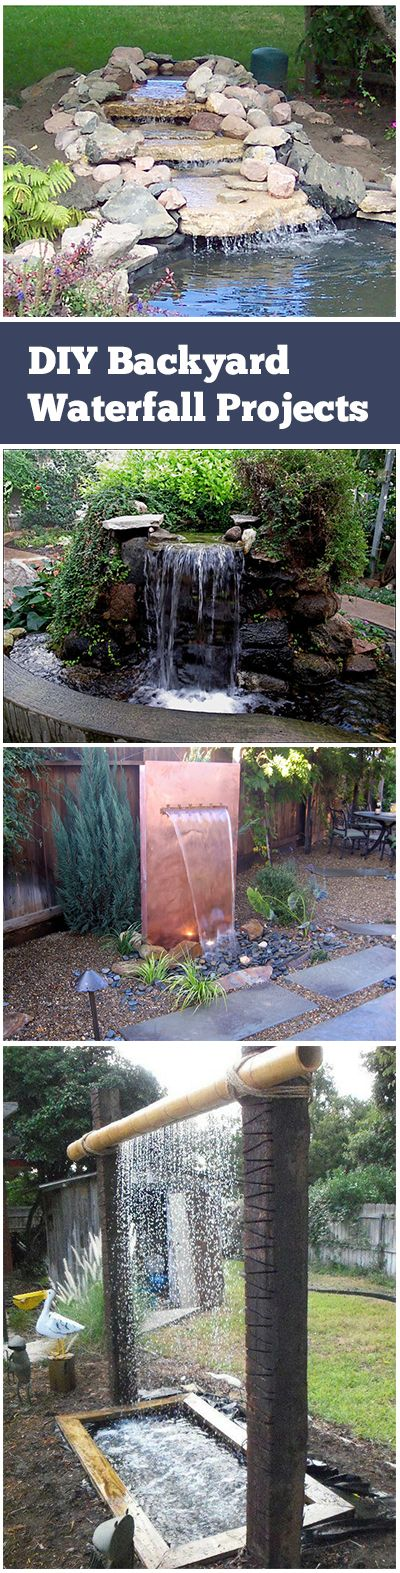 Backyard Water Feature Ideas Diy Waterfalls Ponds And Other Fun